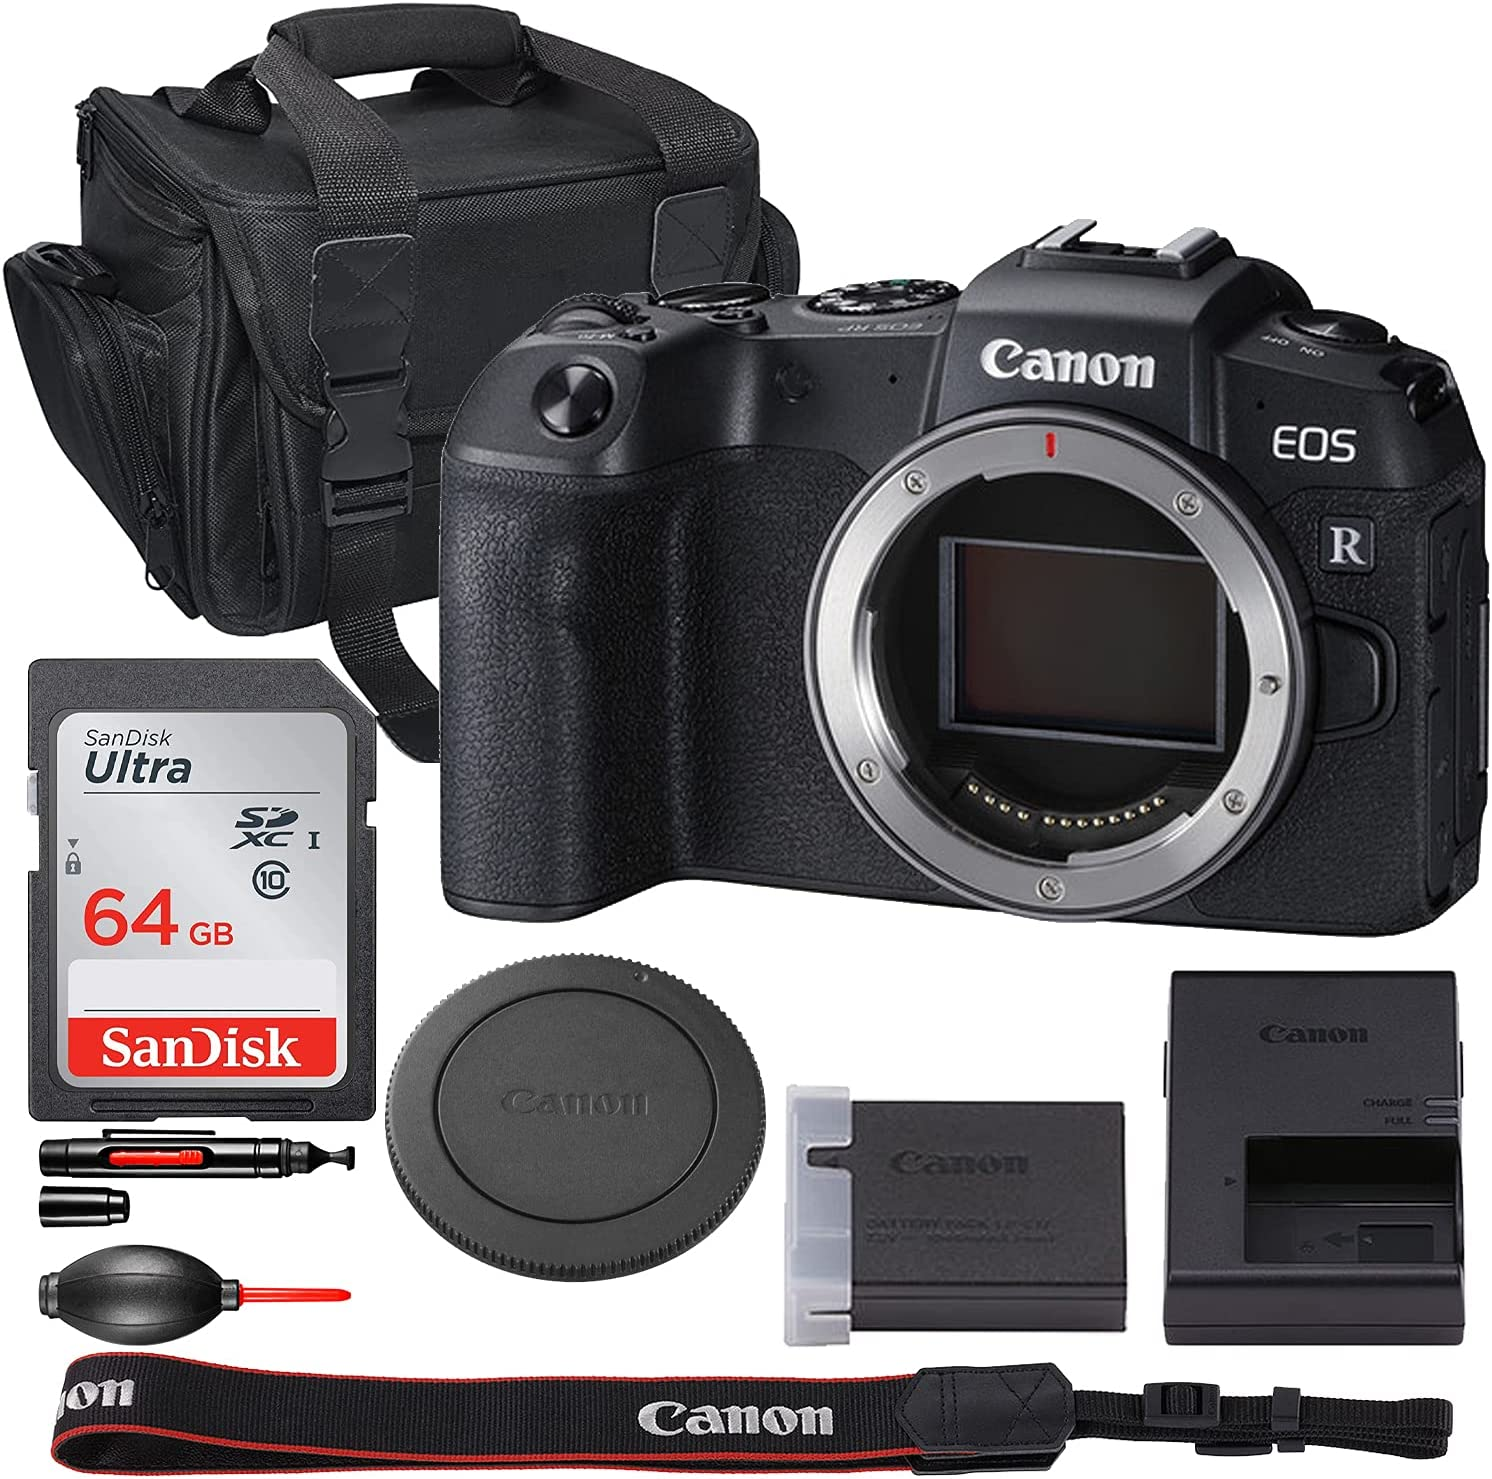 Canon EOS RP Mirrorless Digital Camera 3380 Body Only National Limited price products - Bundle